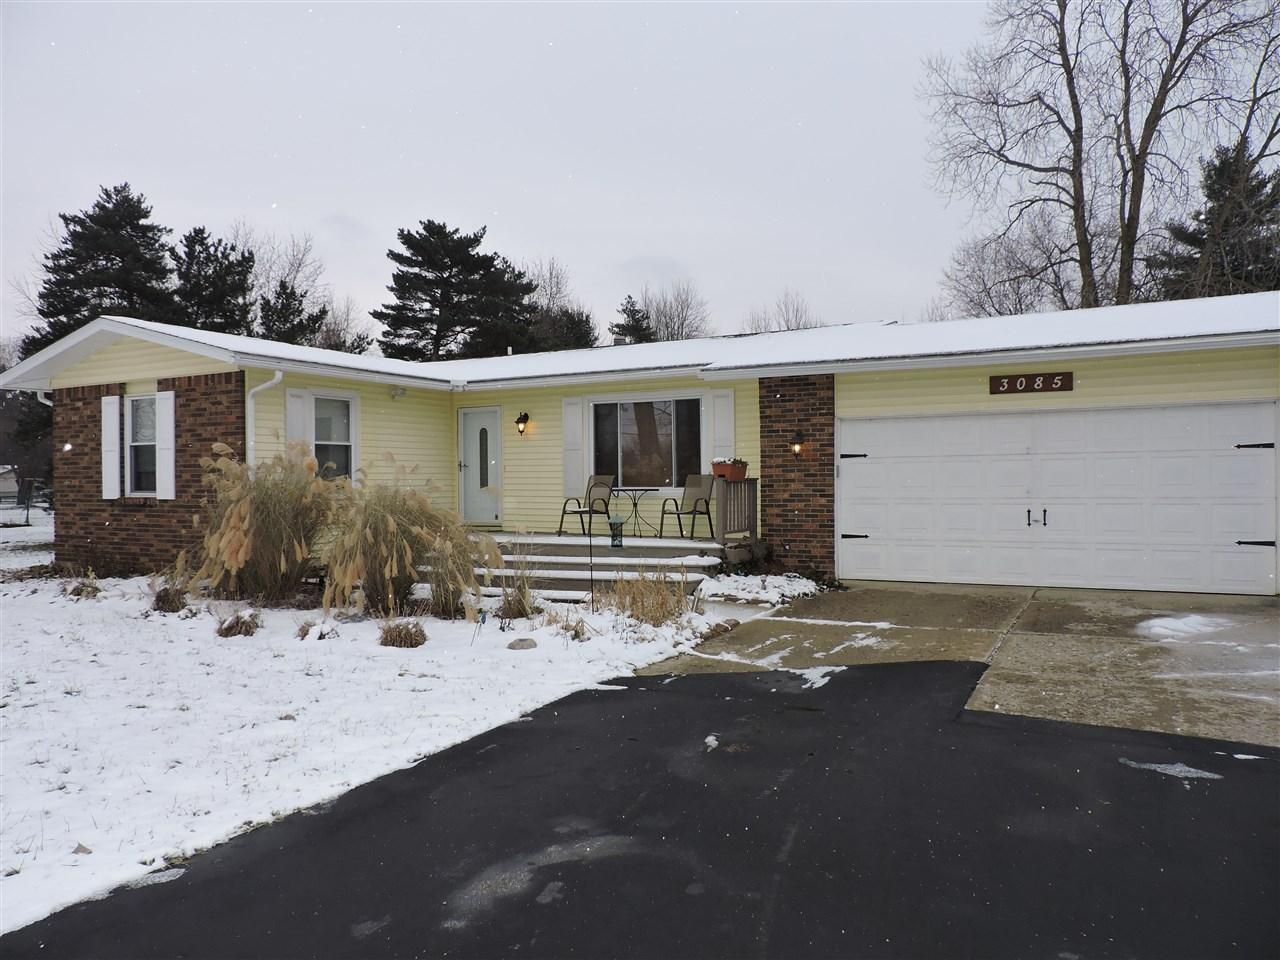 local real estate homes for sale 48519 coldwell banker rh coldwellbanker com homes for sale burton mi 48519 homes for sale burton mi 48519